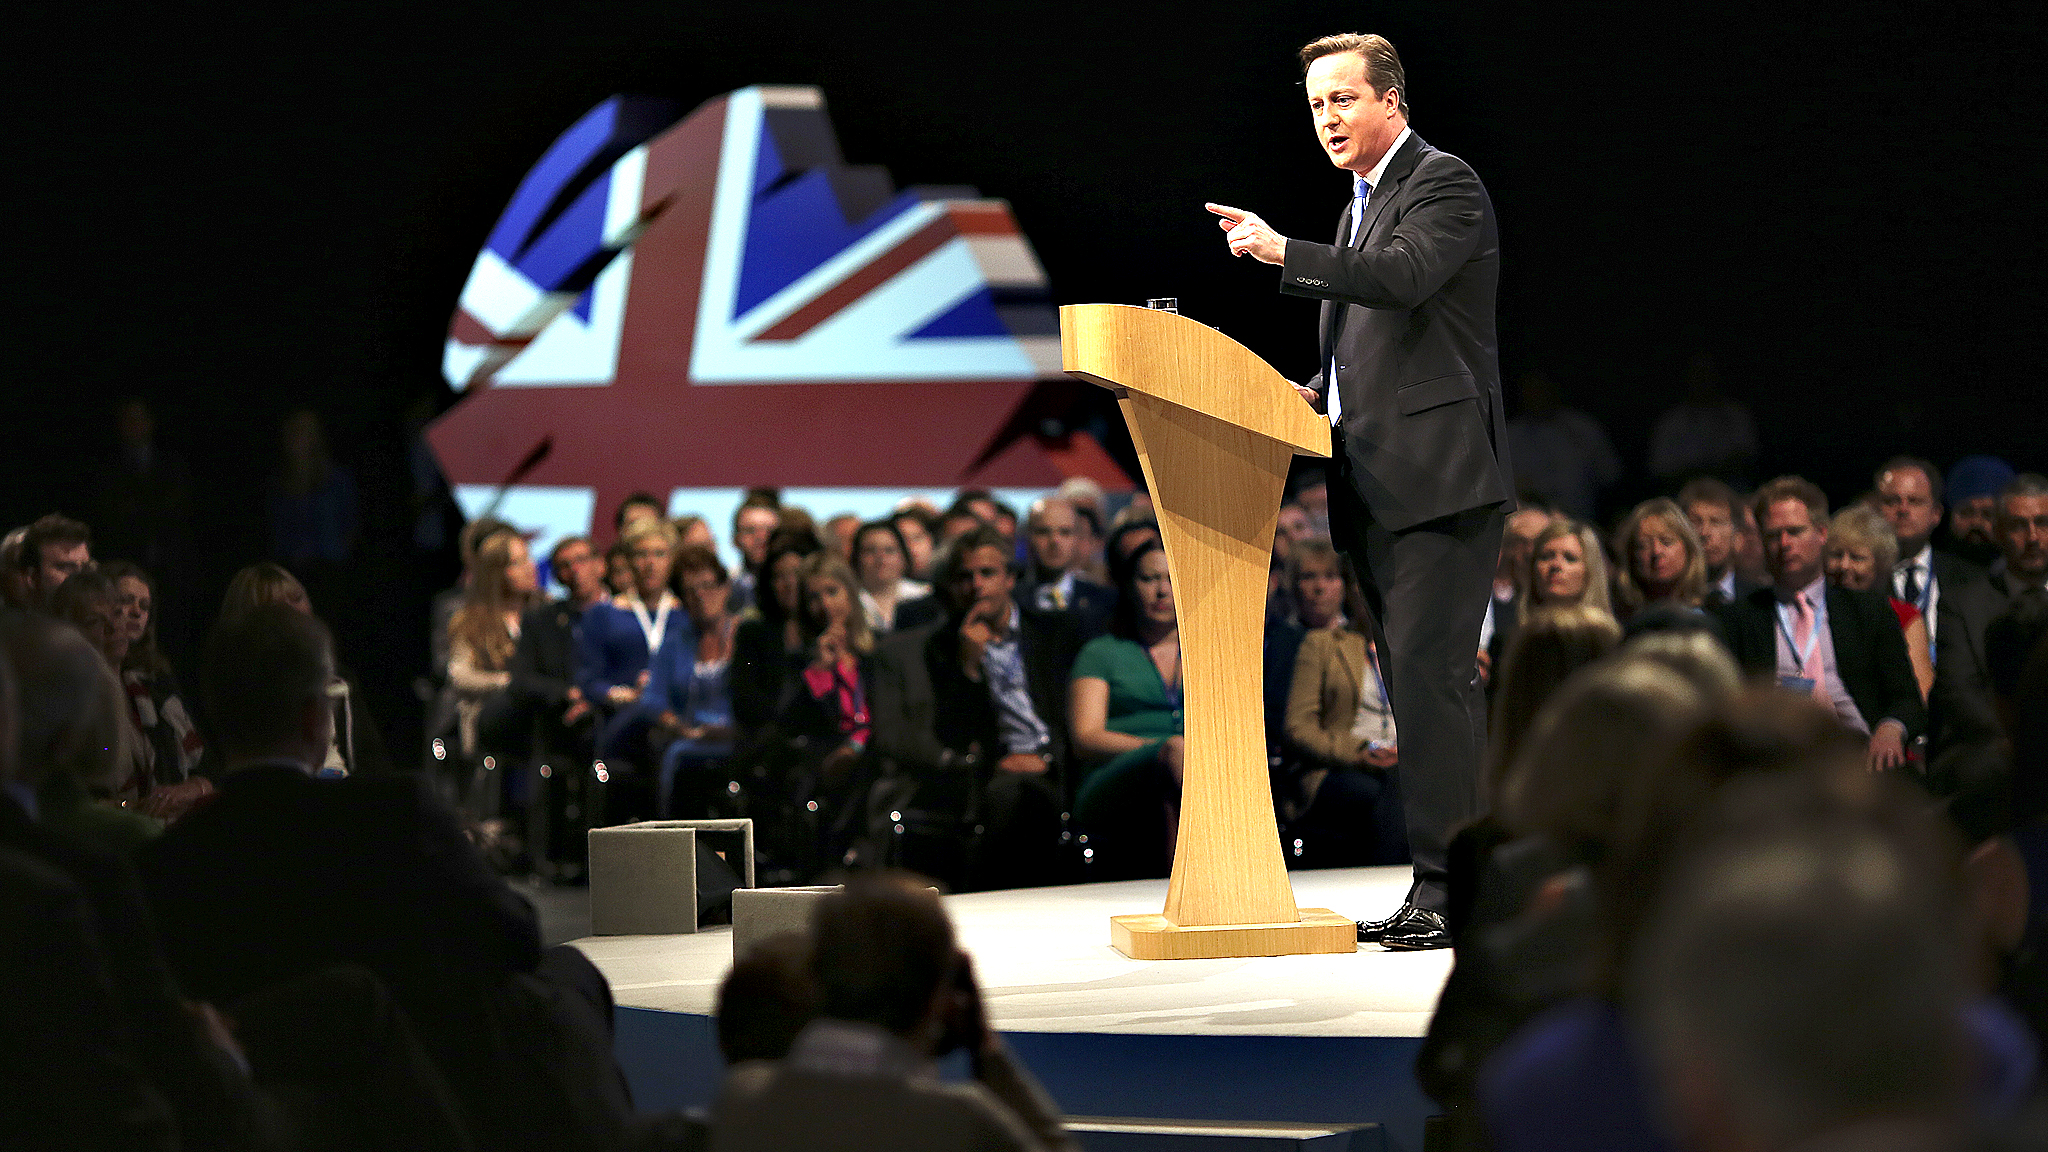 Leader of the Conservative Party and Prime Minister, David Cameron, delivers his keynote speech to close the conference in Manchester.